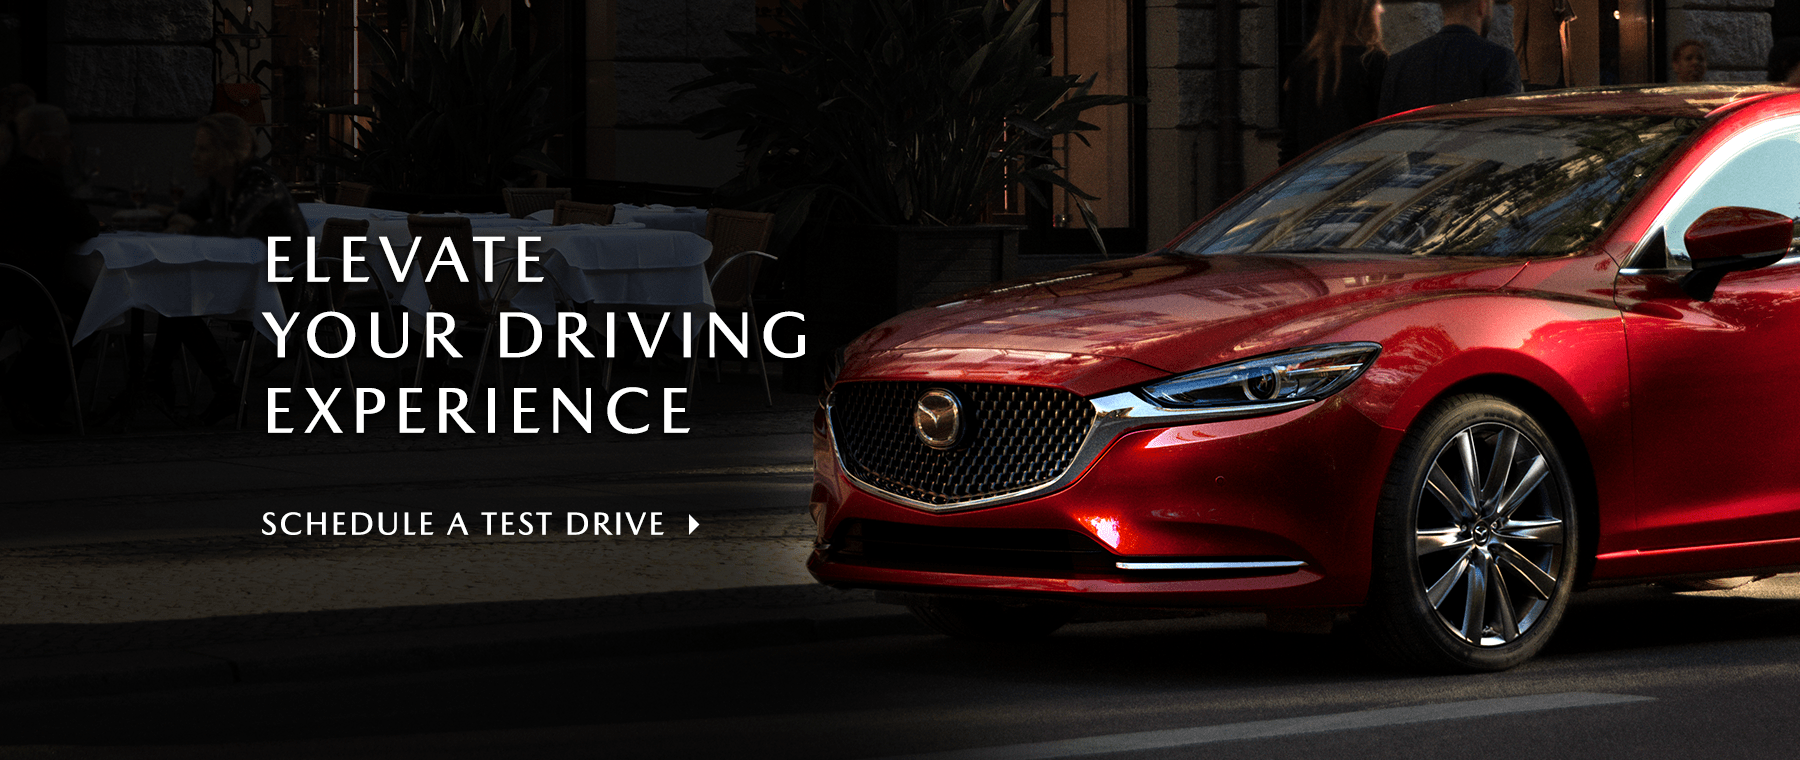 Elevate your driving experience red Mazda parked